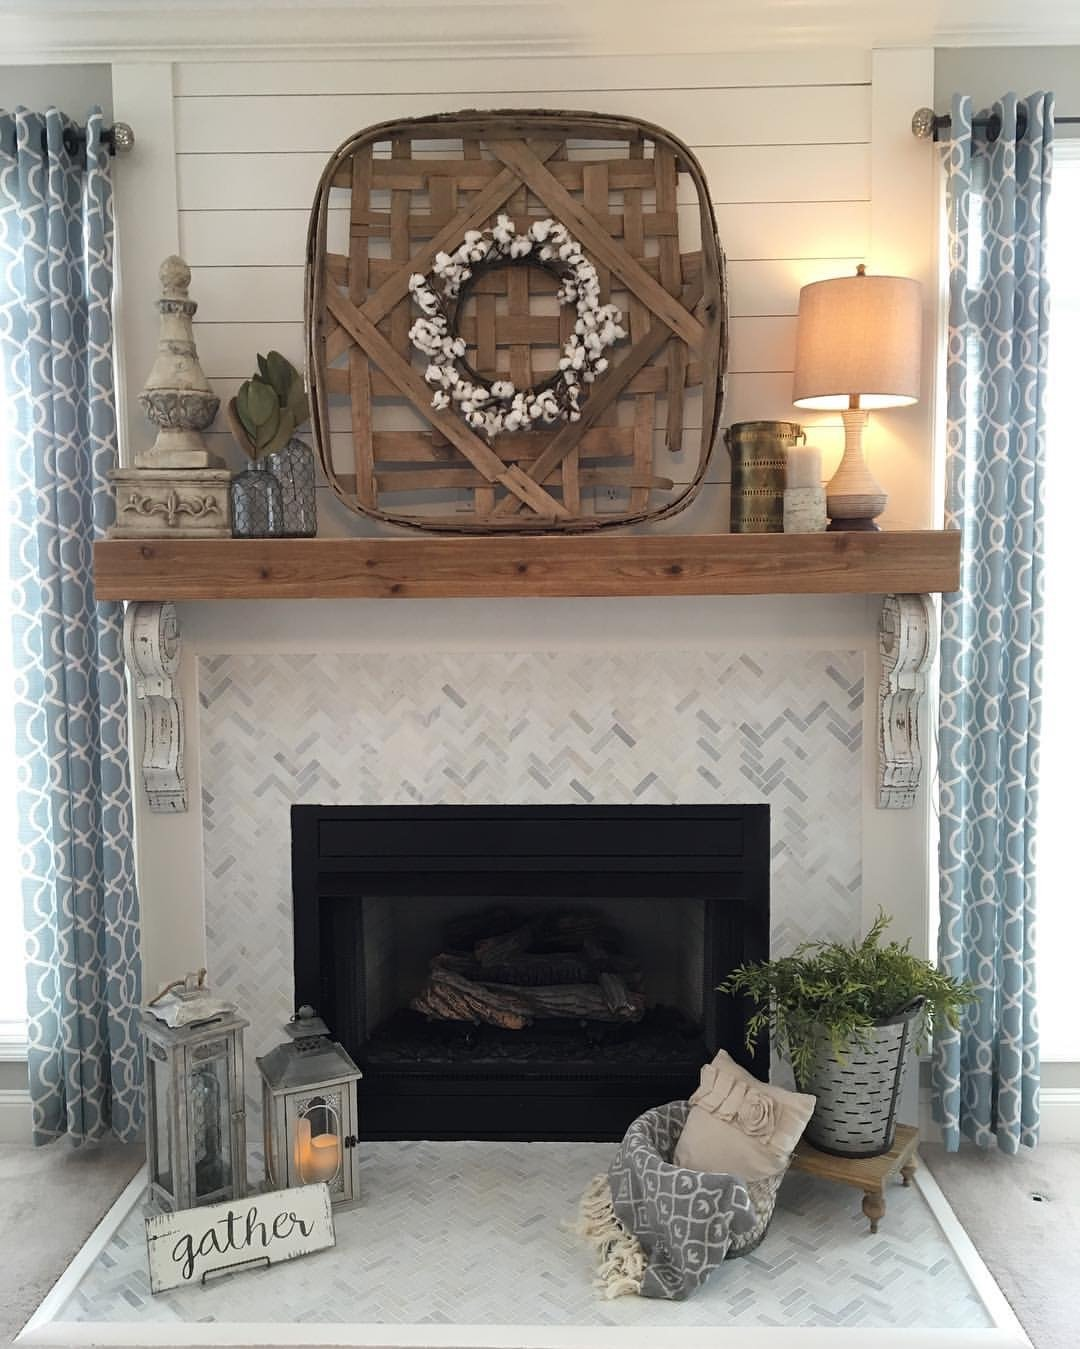 Our fireplace overhaul…from drab to fab!